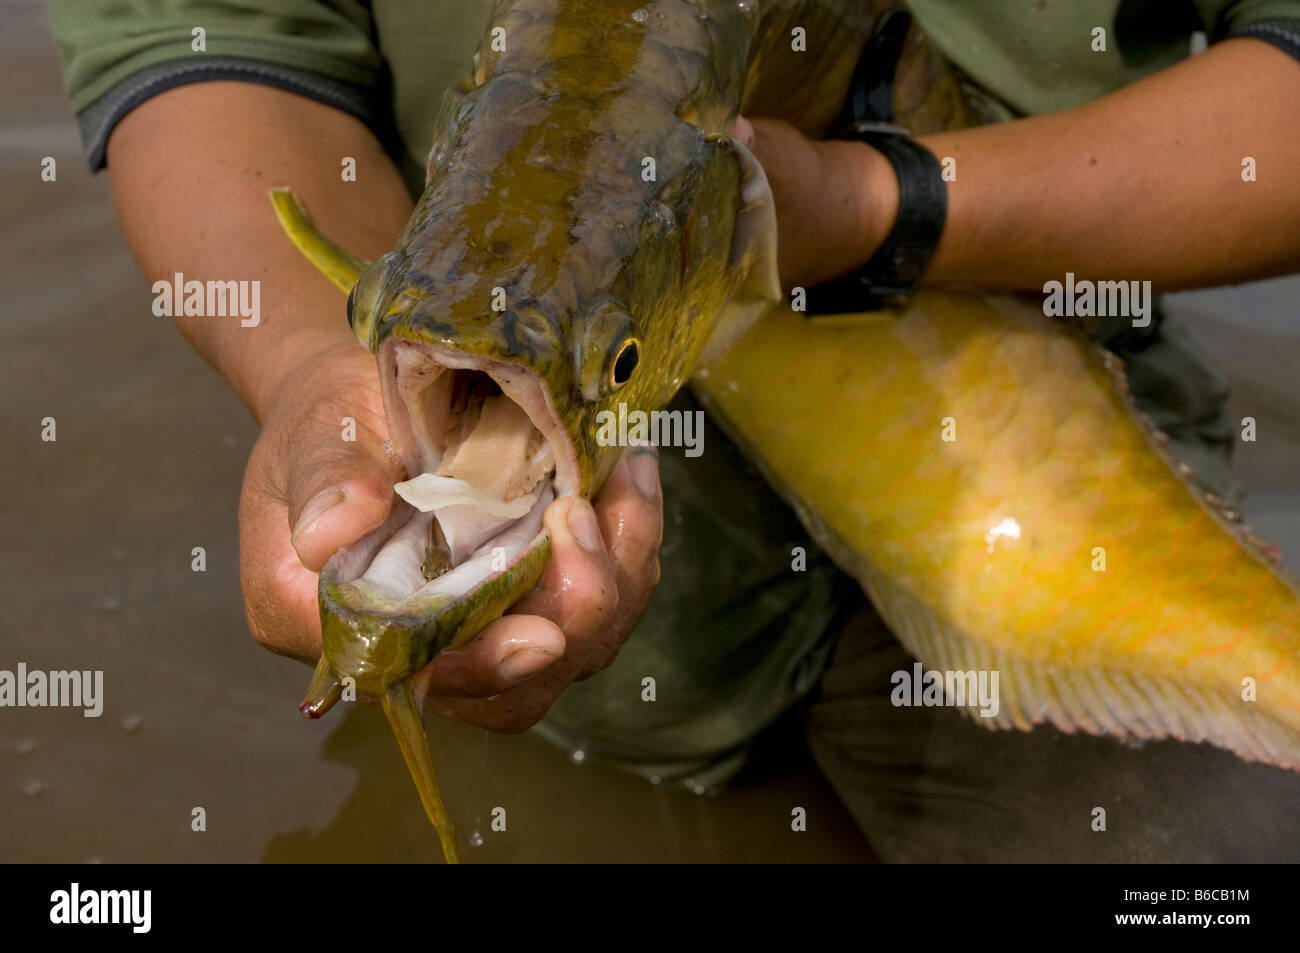 Silver Arowana: Care Guide, Tank Size, Diet and More ...